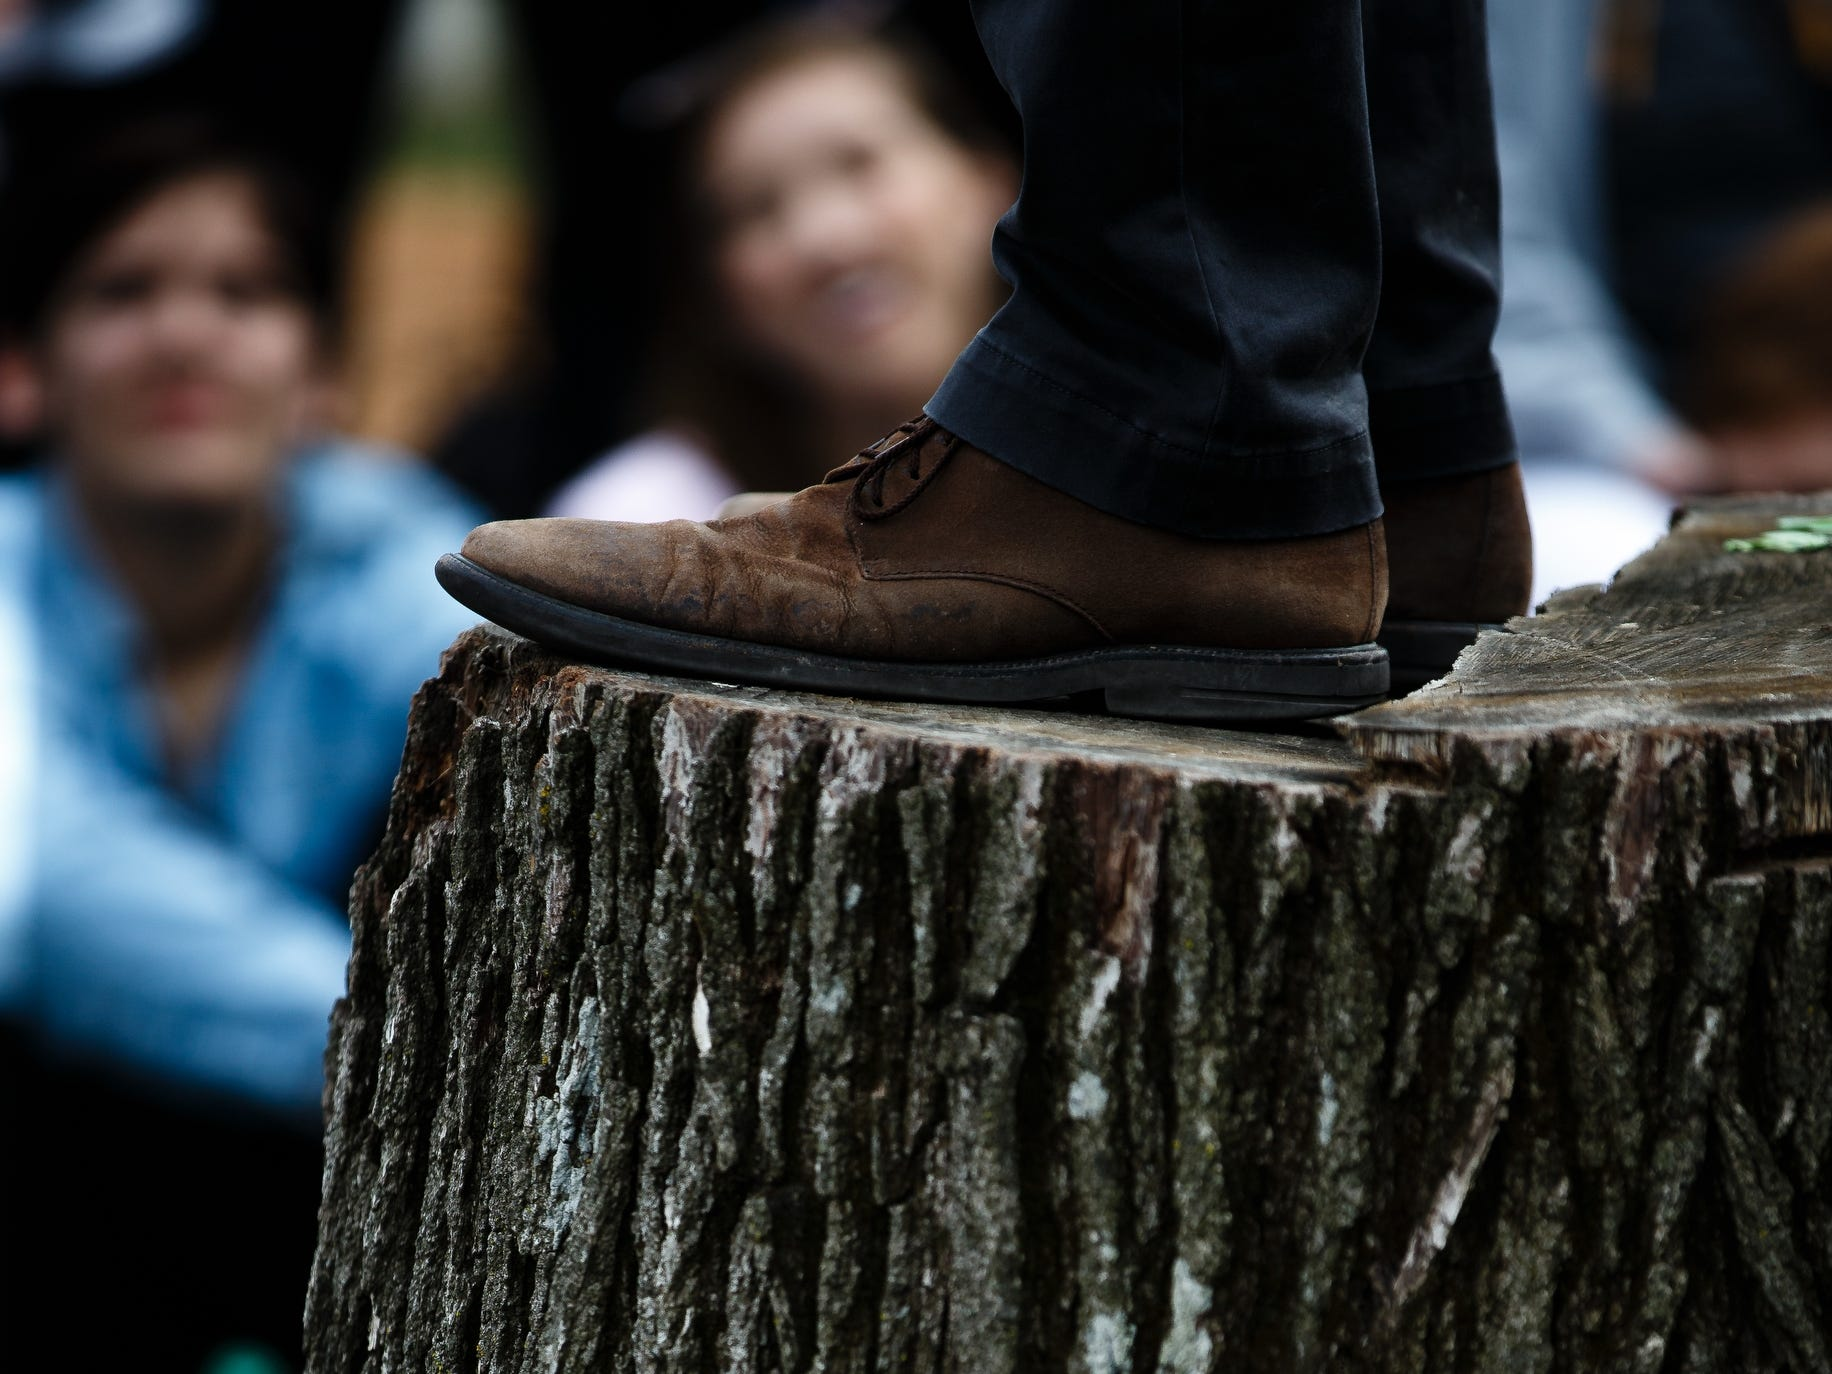 2020 Democratic presidential candidate and former Texas Representative Beto O'Rourke stands on a tree stump to give his speech in Marshalltown during a swing though Iowa on Friday, April 5, 2019, in Marshalltown.